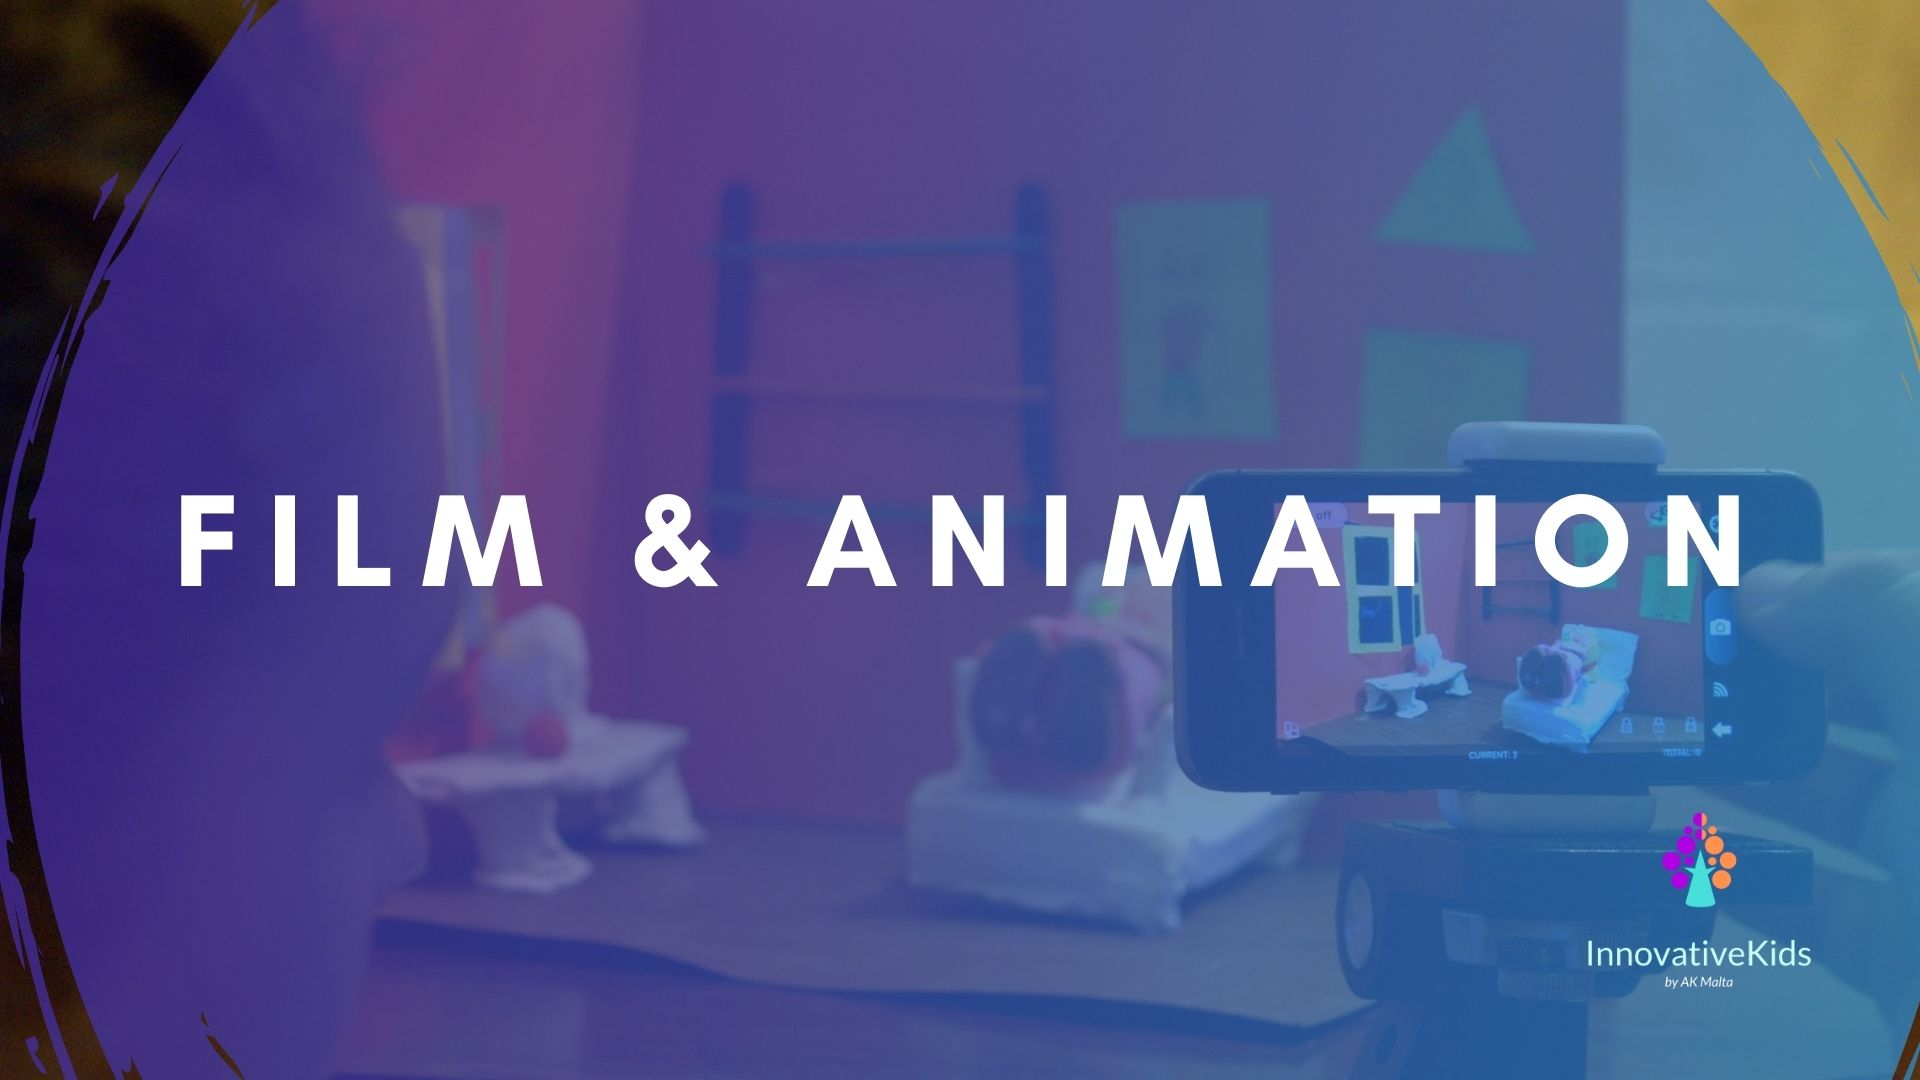 Film and Animation course 2021 by InnovativeKids